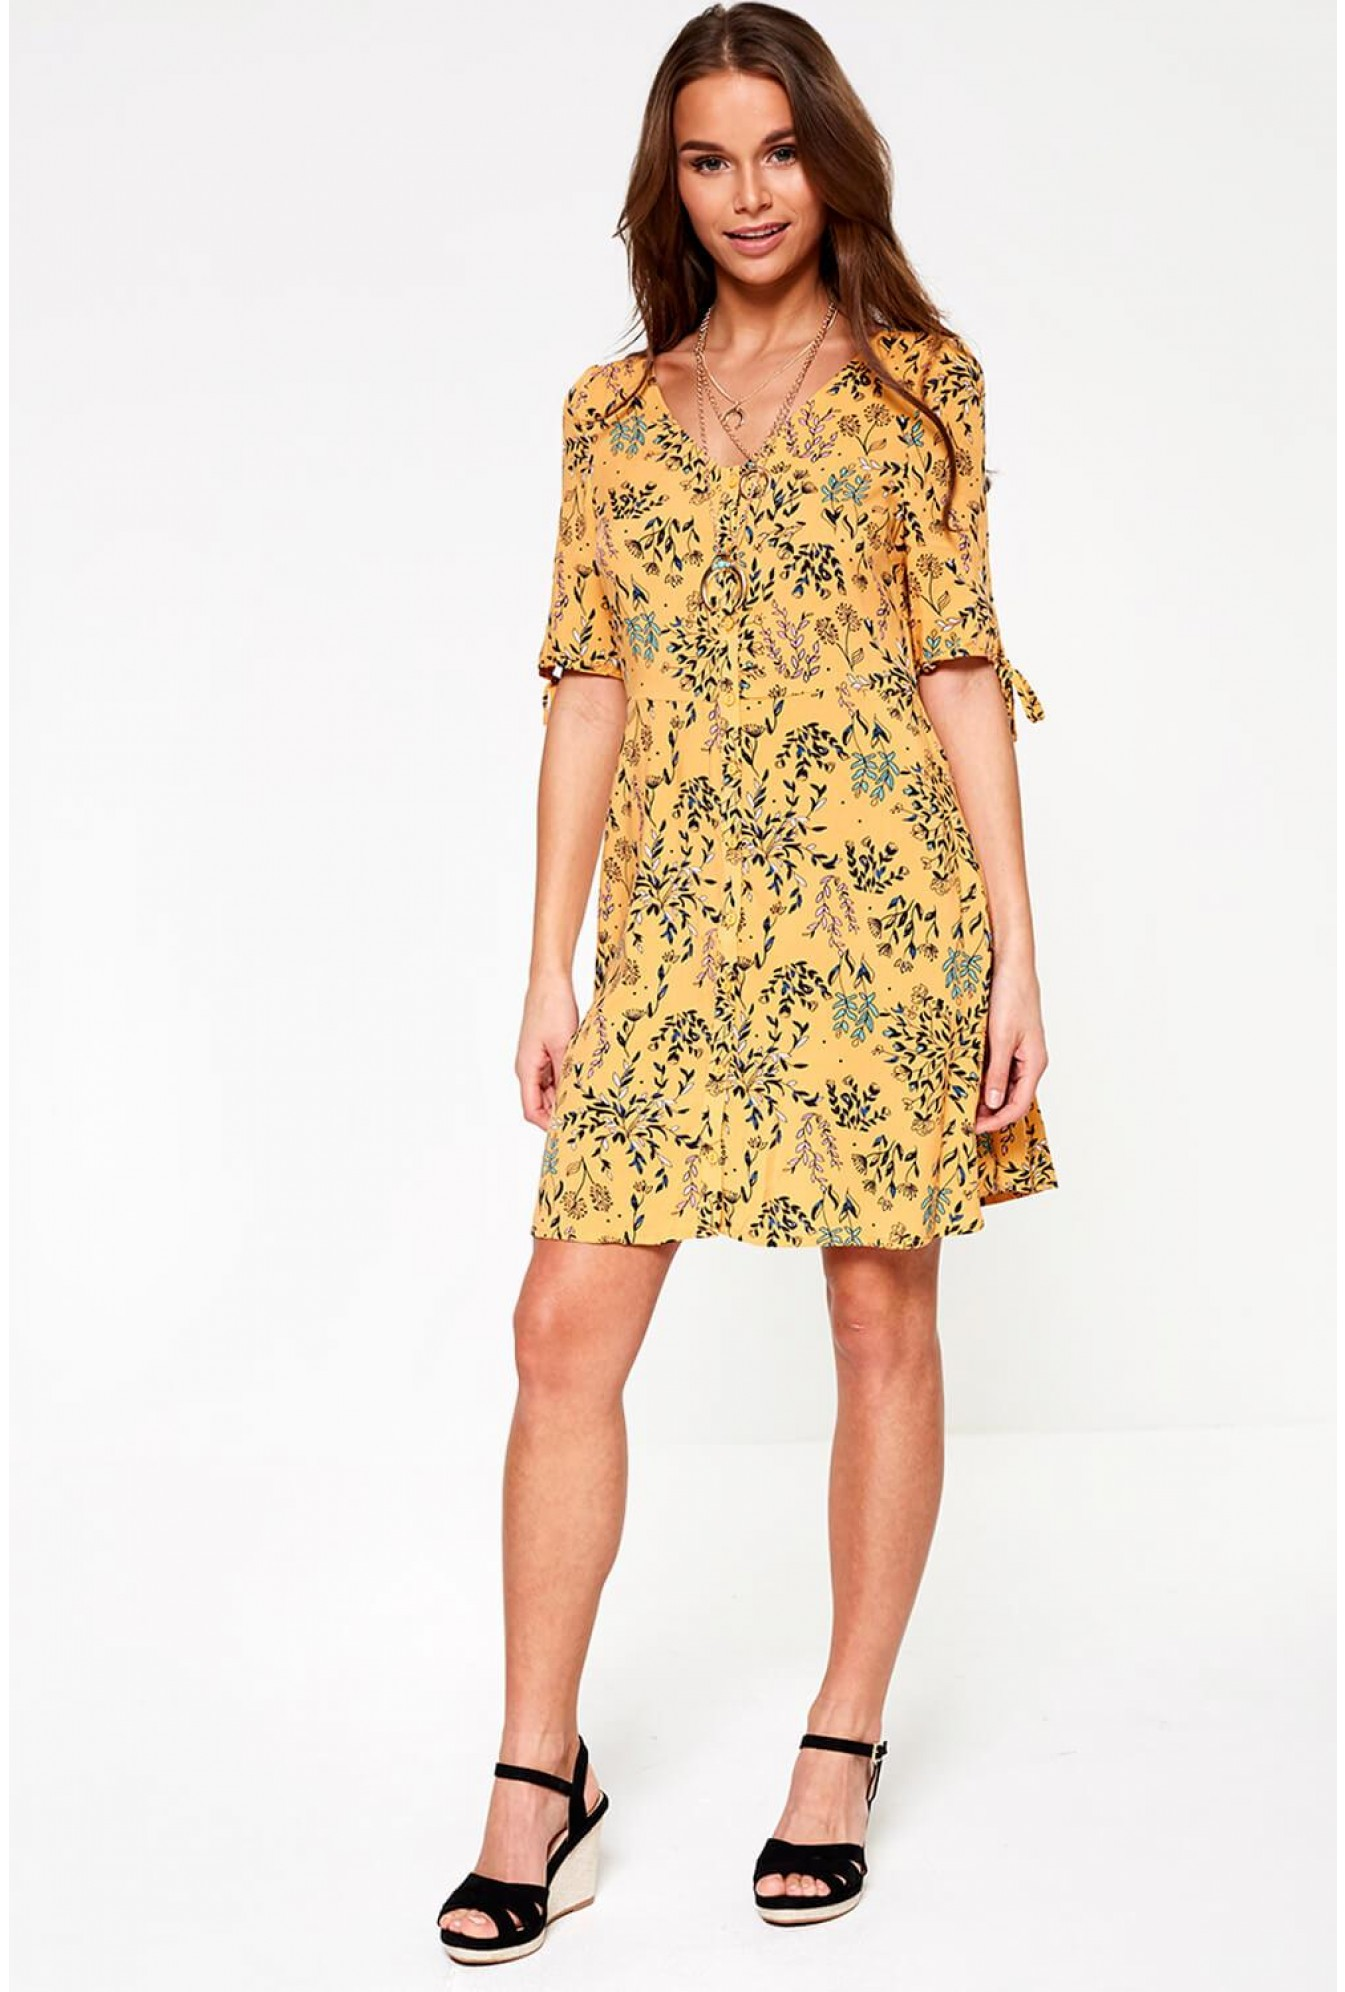 3bd88c2756 More Views. Simply Button Up Midi Dress in Orange Floral Print. Video  Gallery. Vero Moda